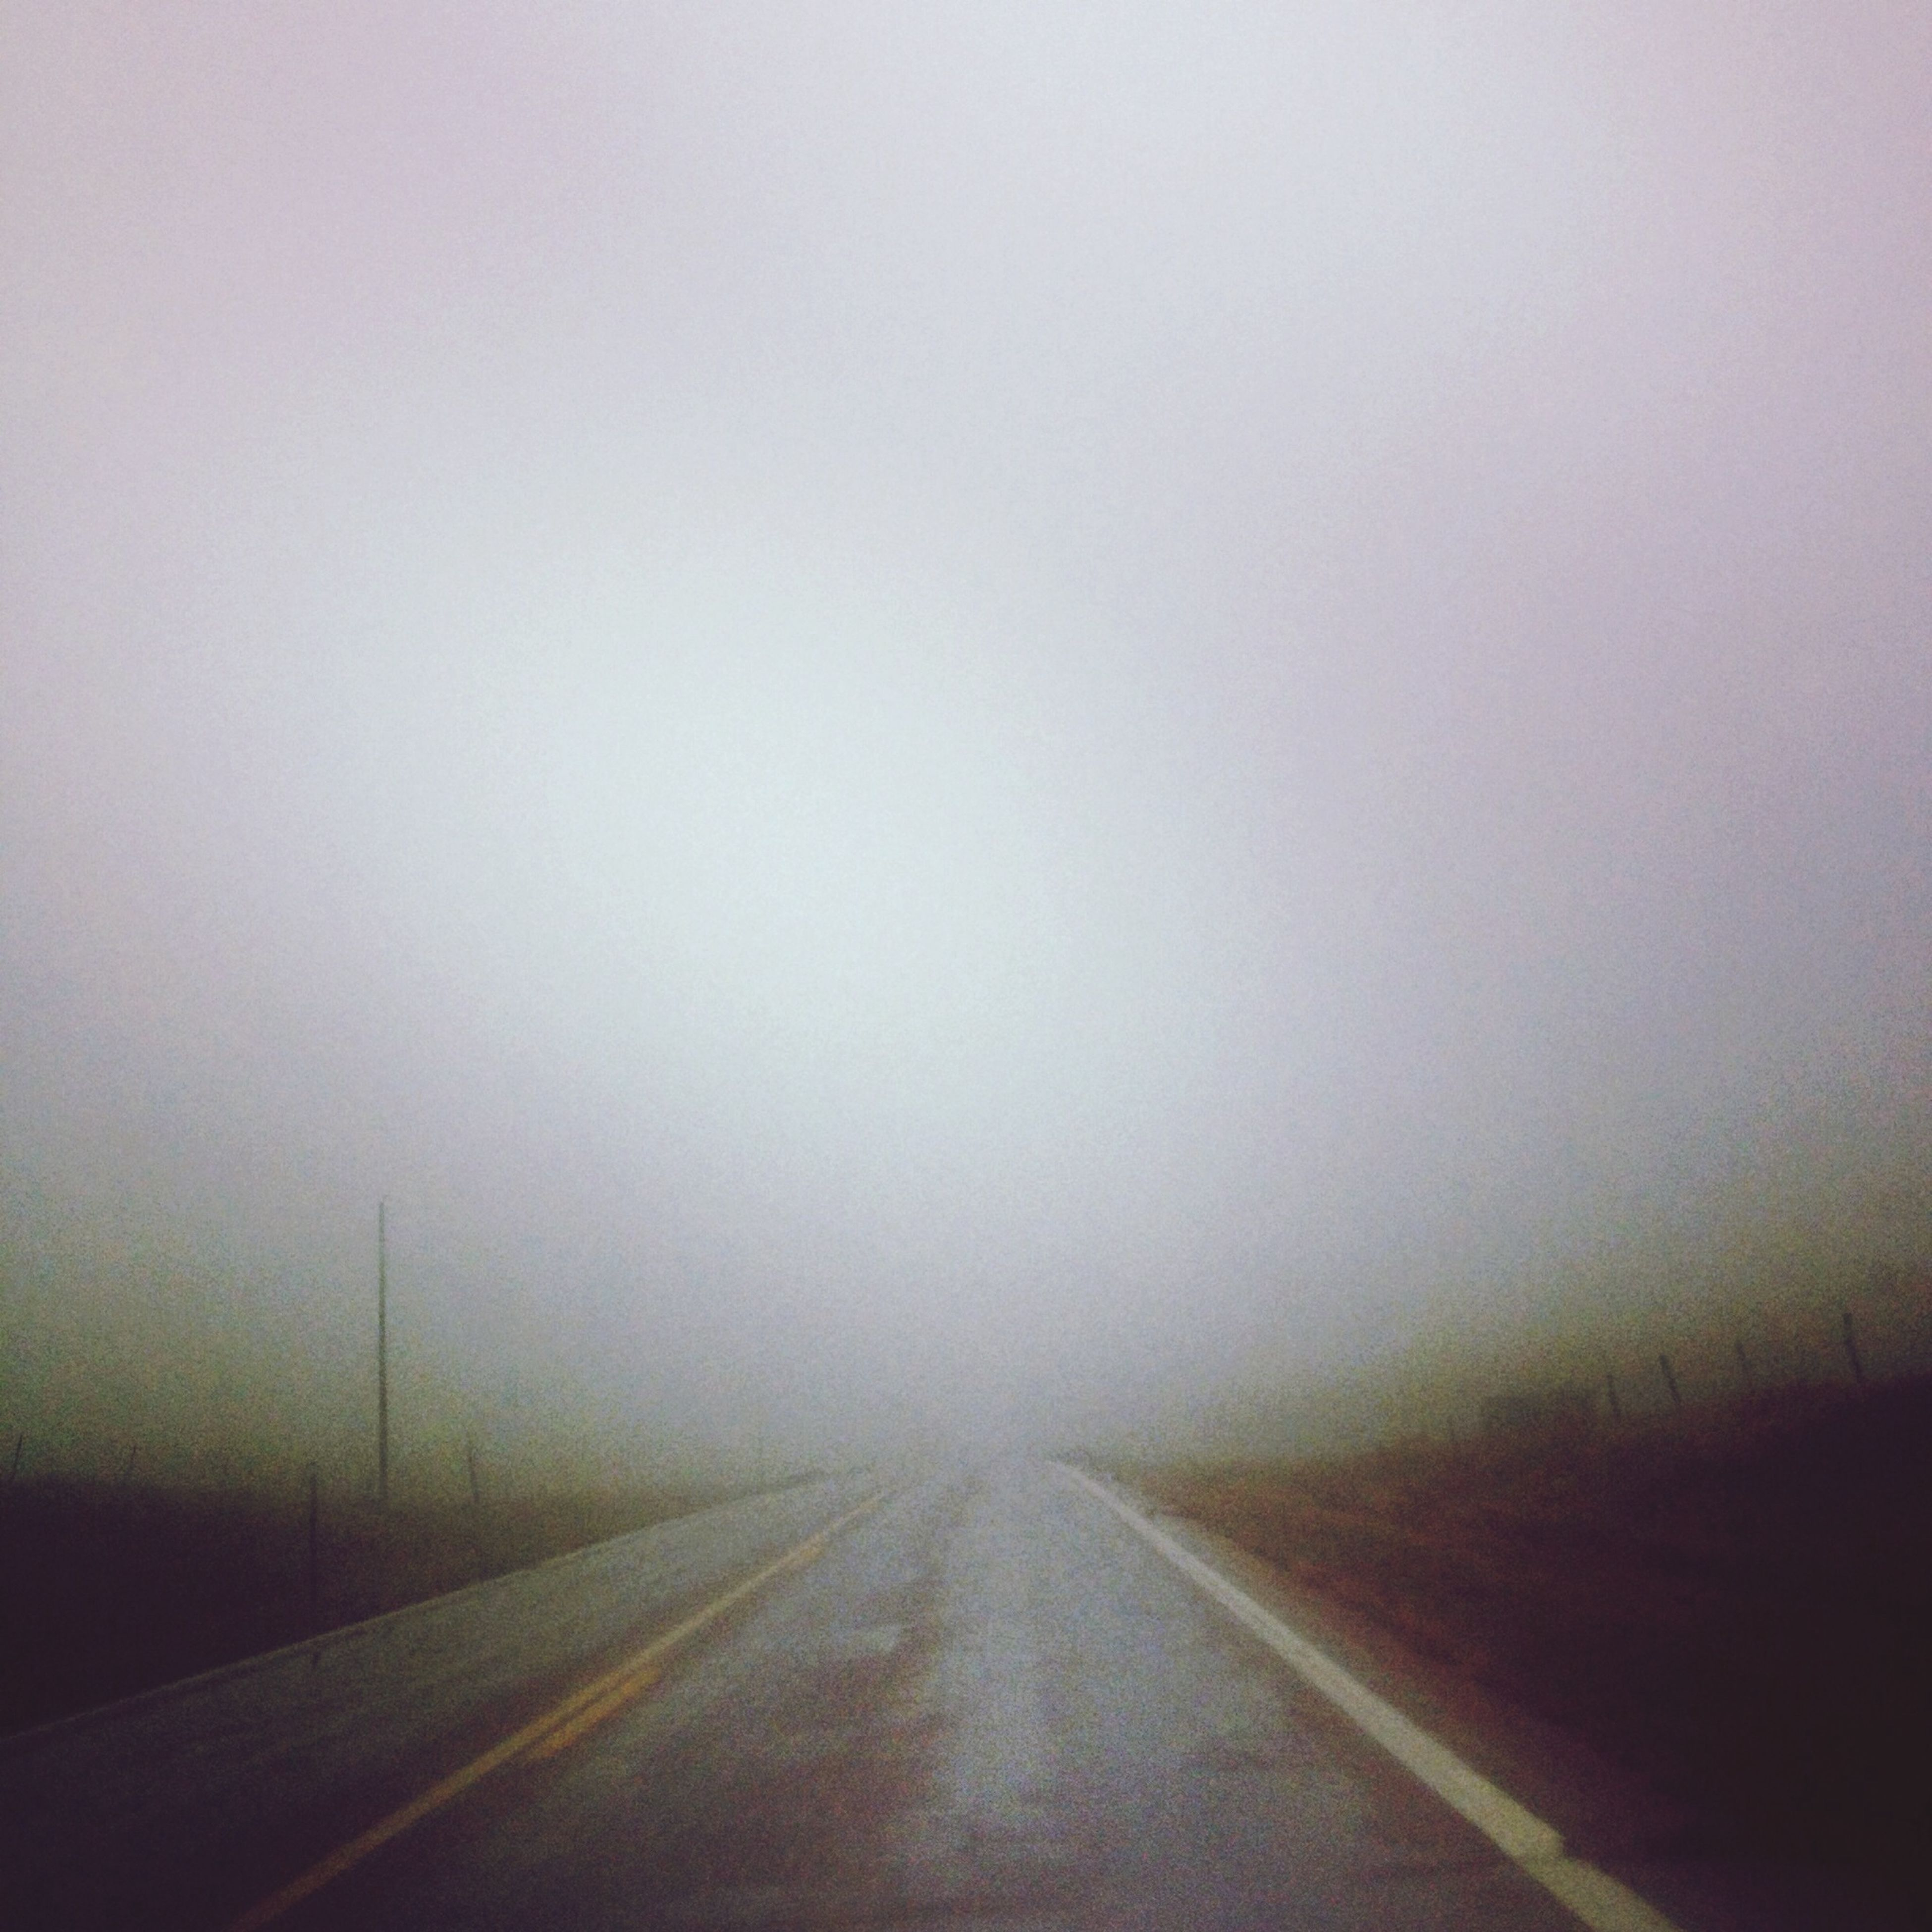 the way forward, fog, diminishing perspective, transportation, road, vanishing point, foggy, weather, copy space, road marking, empty road, empty, long, no people, nature, sky, day, outdoors, tranquility